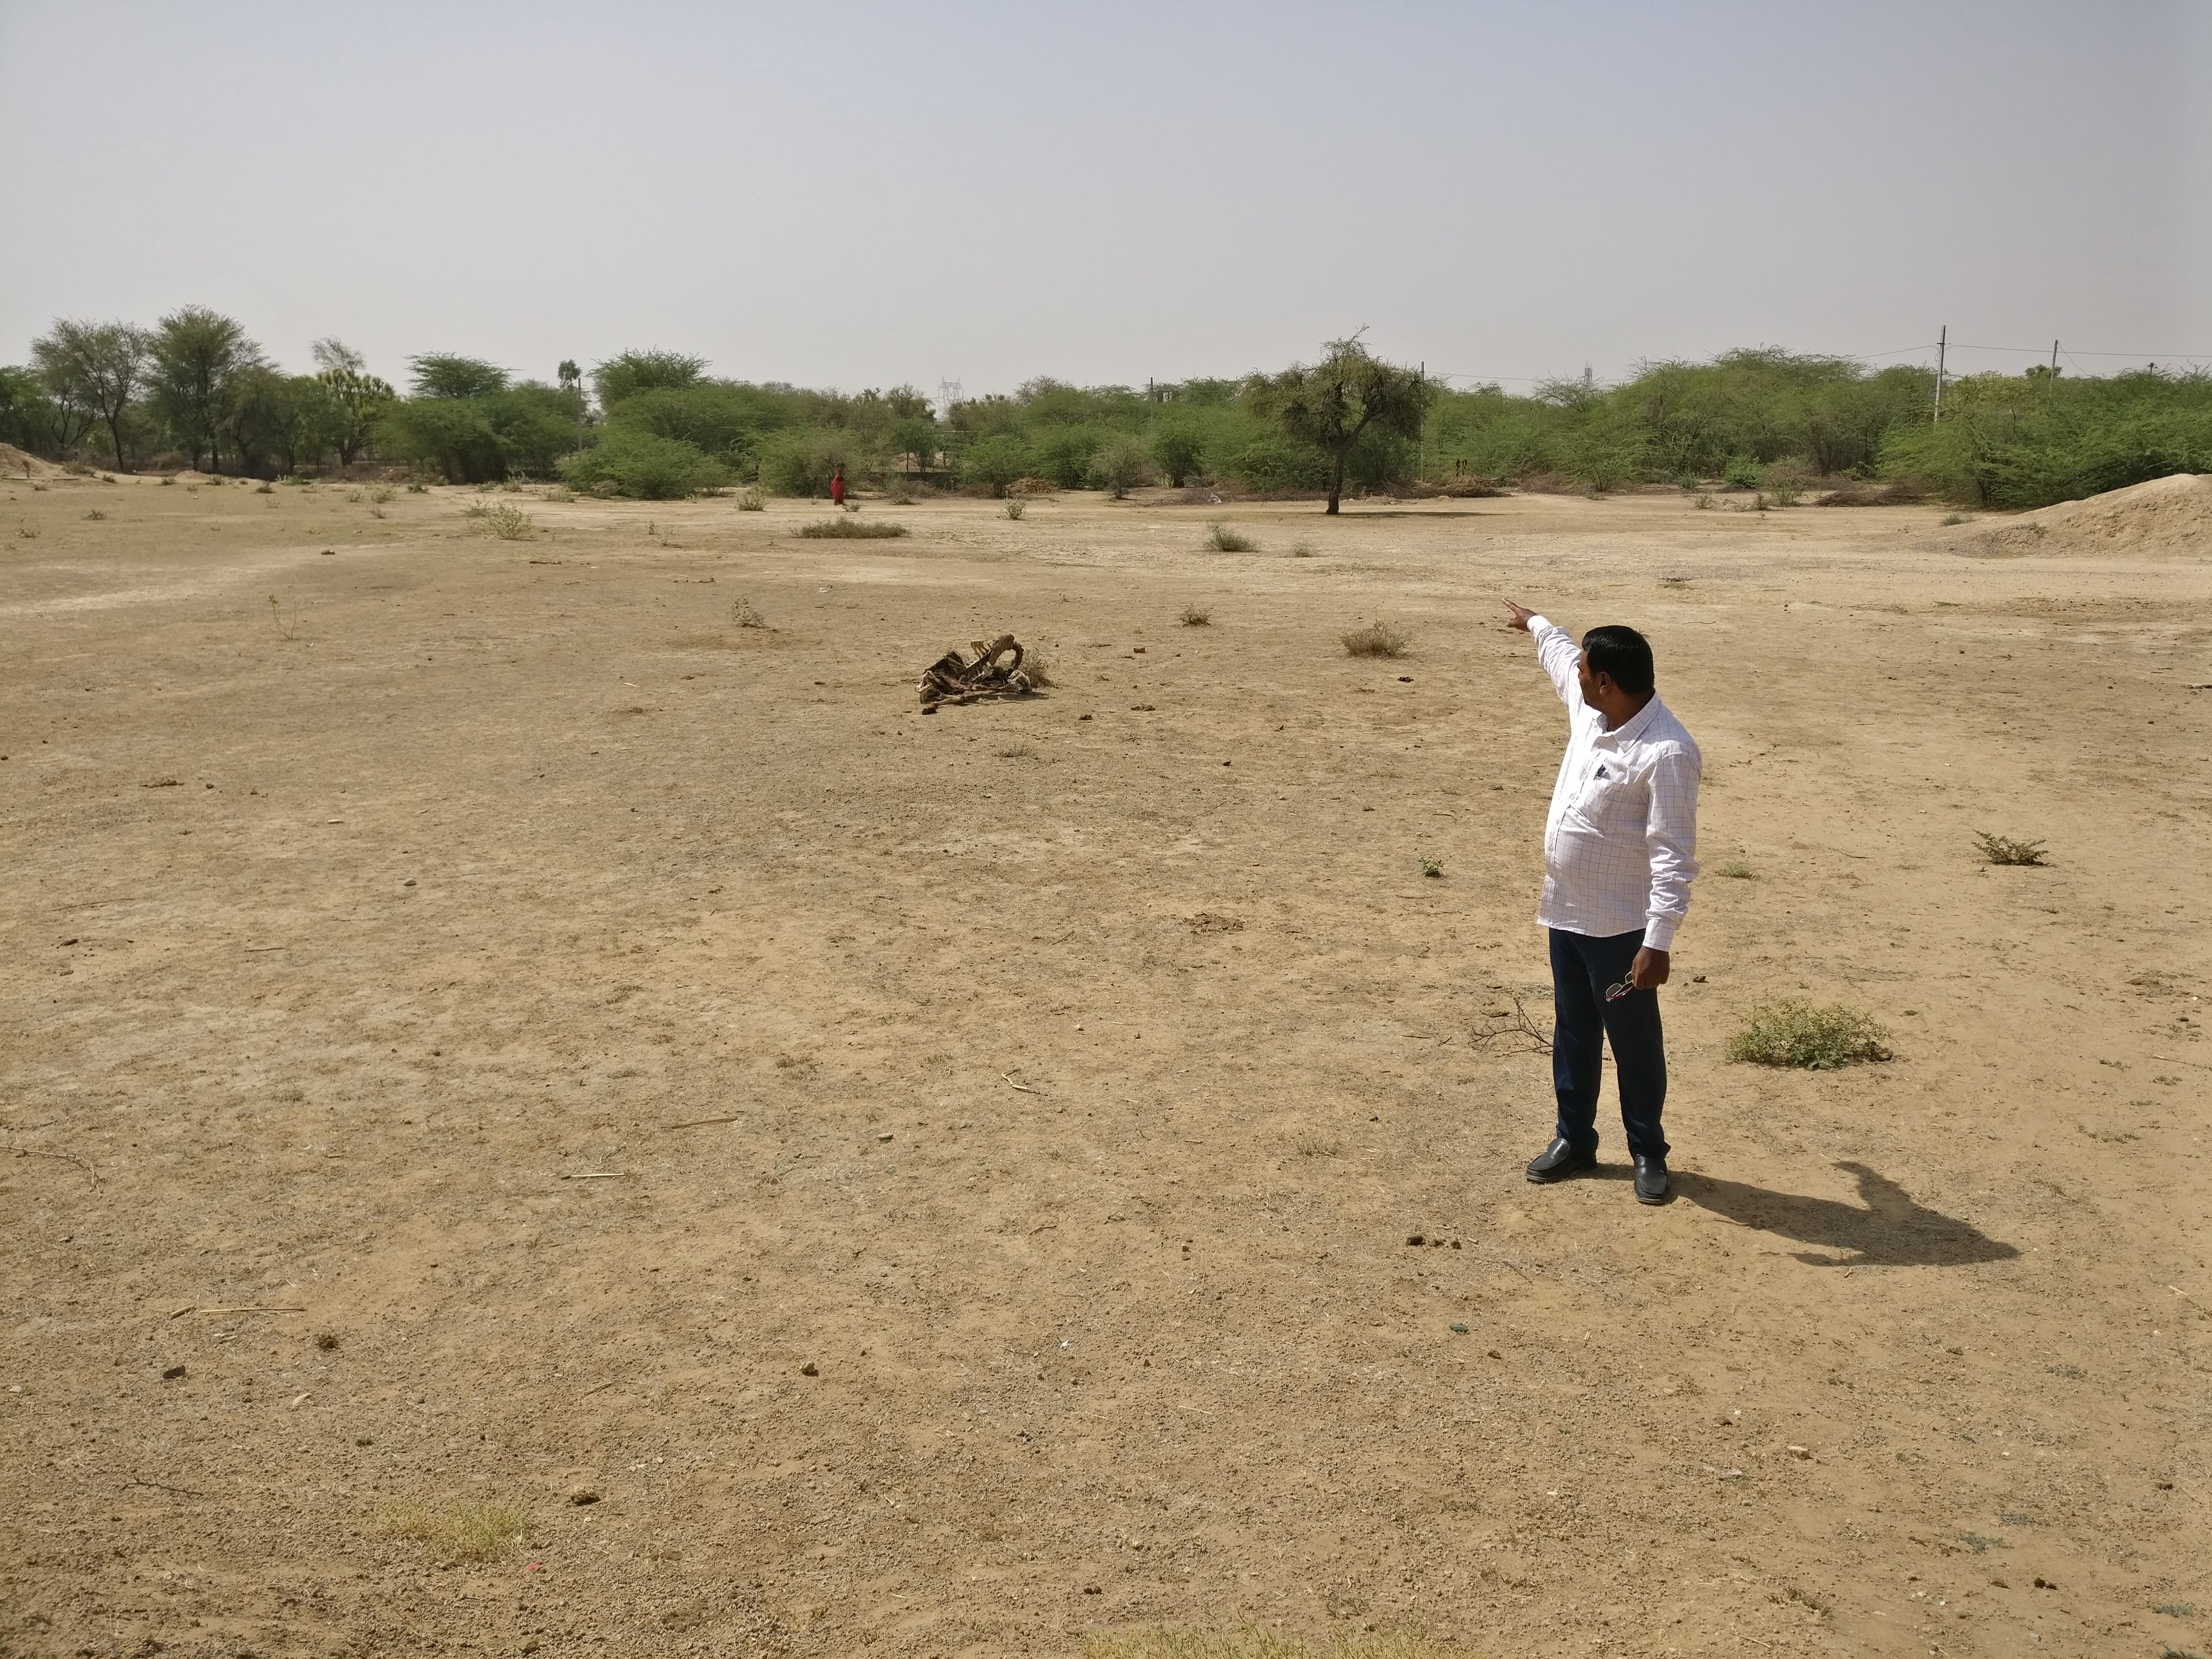 Shambhu Dayal Bairwa, a teacher at the Adarsh senior school in Pipla, points to land that belongs to the school but is now used as a dumping ground for cattle carcasses.